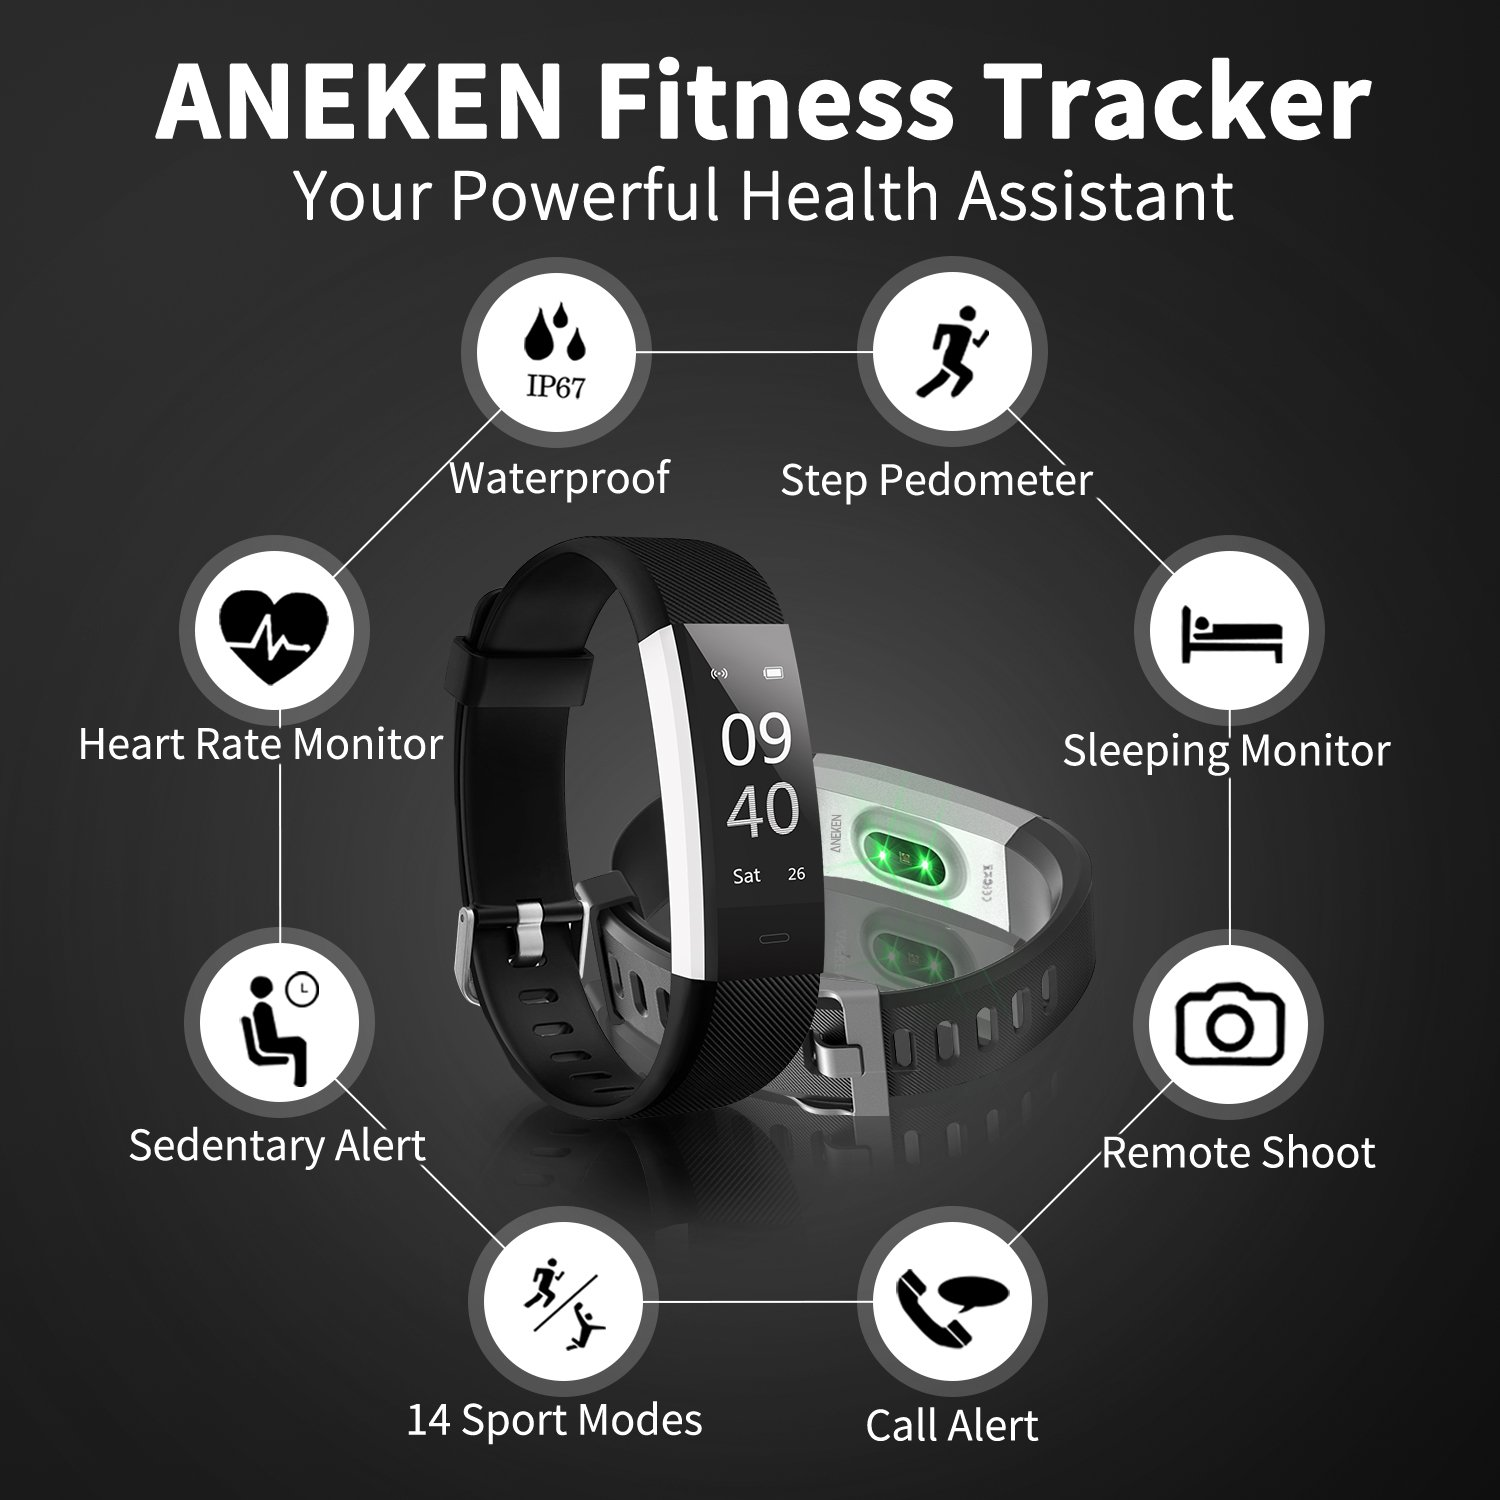 Fitness Tracker Activity Tracker Aneken Smart Band Heart Rate Sleep Monitor Waterproof Smart Bracelet Bluetooth Pedometer Wristband Smart Watches for Android and iOS Smart Phones by ANEKEN (Image #2)